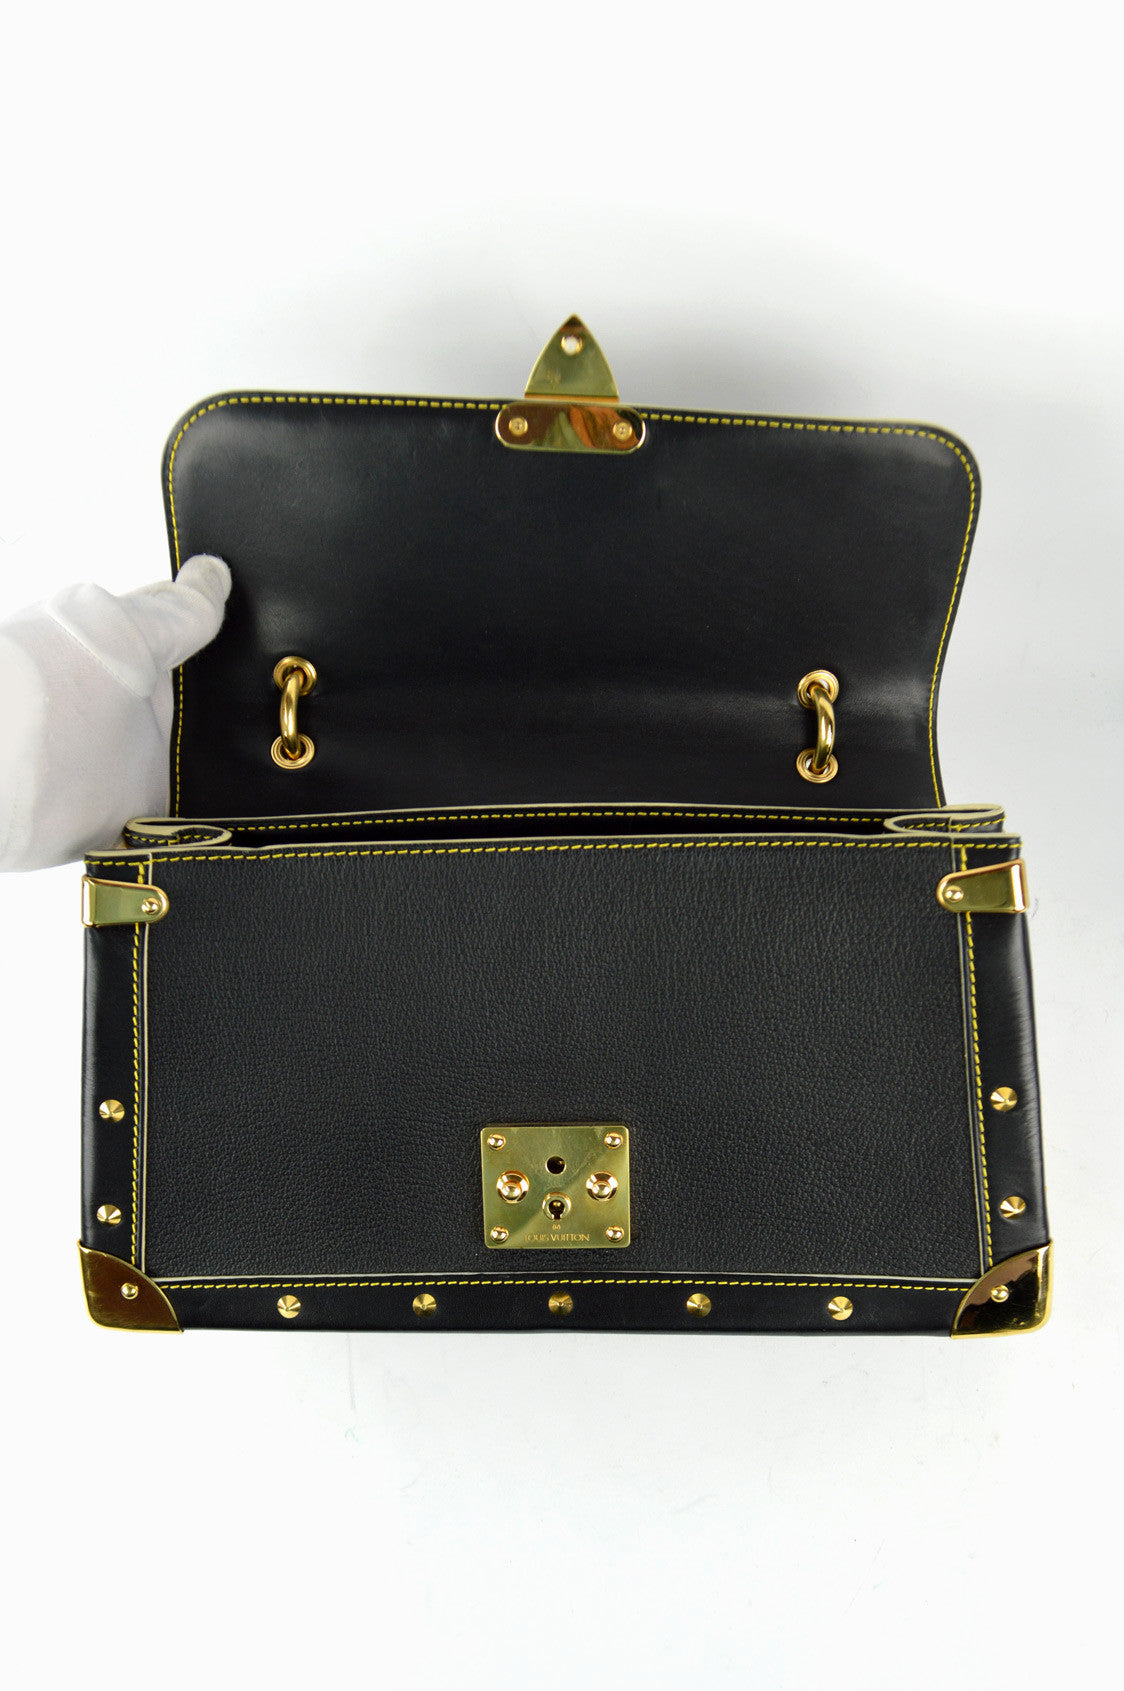 Black Suhali Leather Talentueux Bag